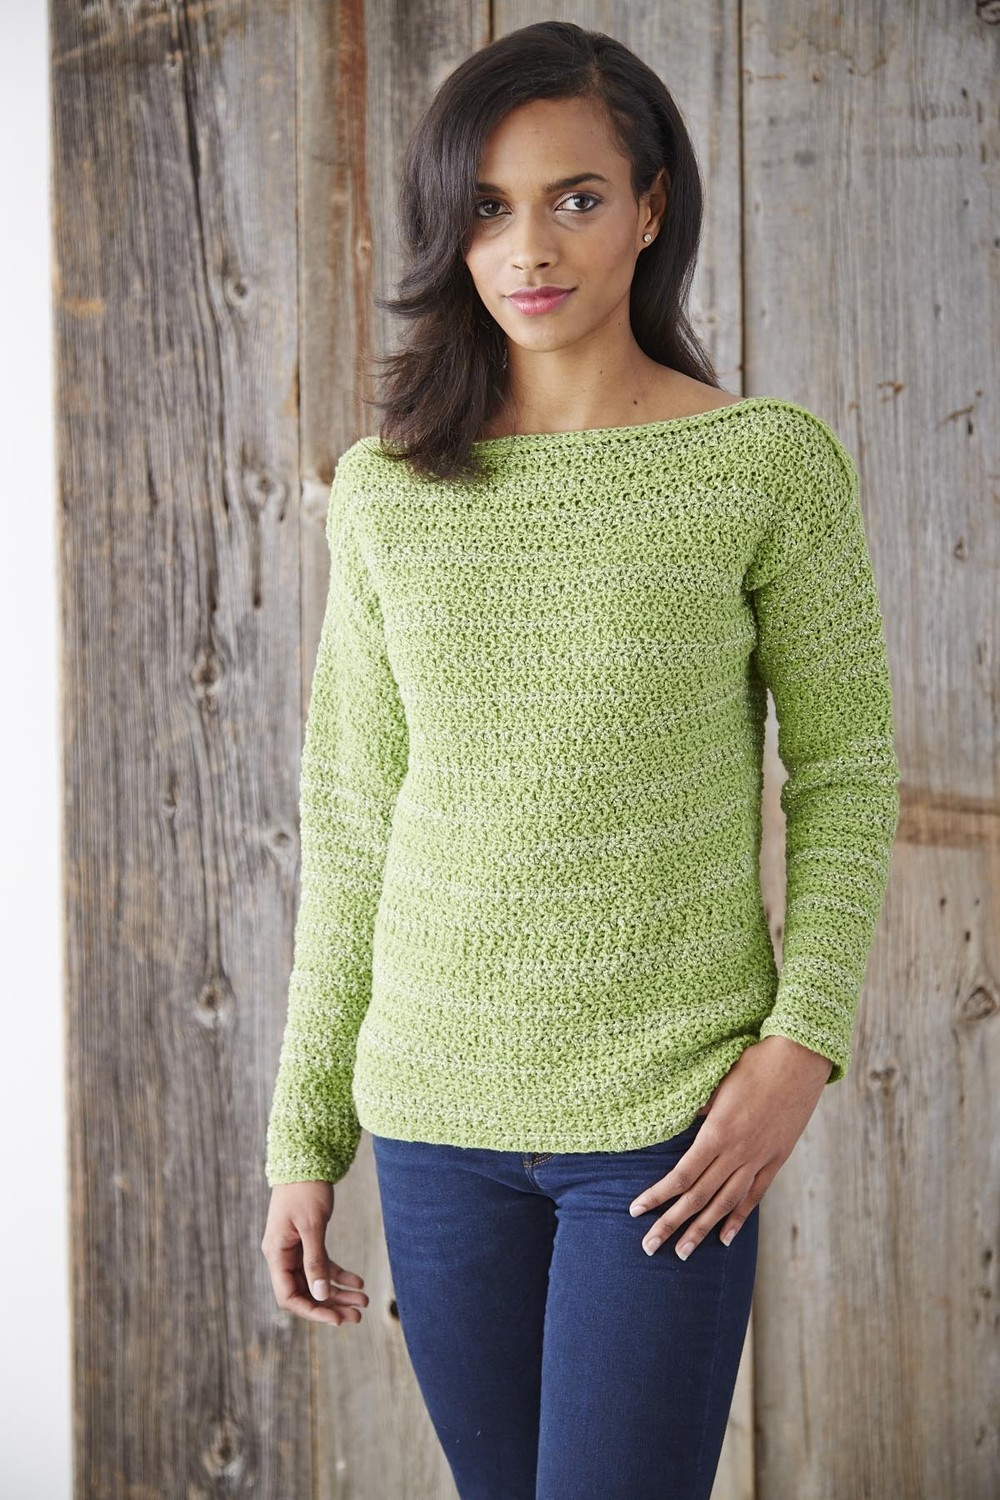 Knitting Patterns For Boat Neck Sweaters : Boat Neck Pullover Sweater AllFreeCrochet.com